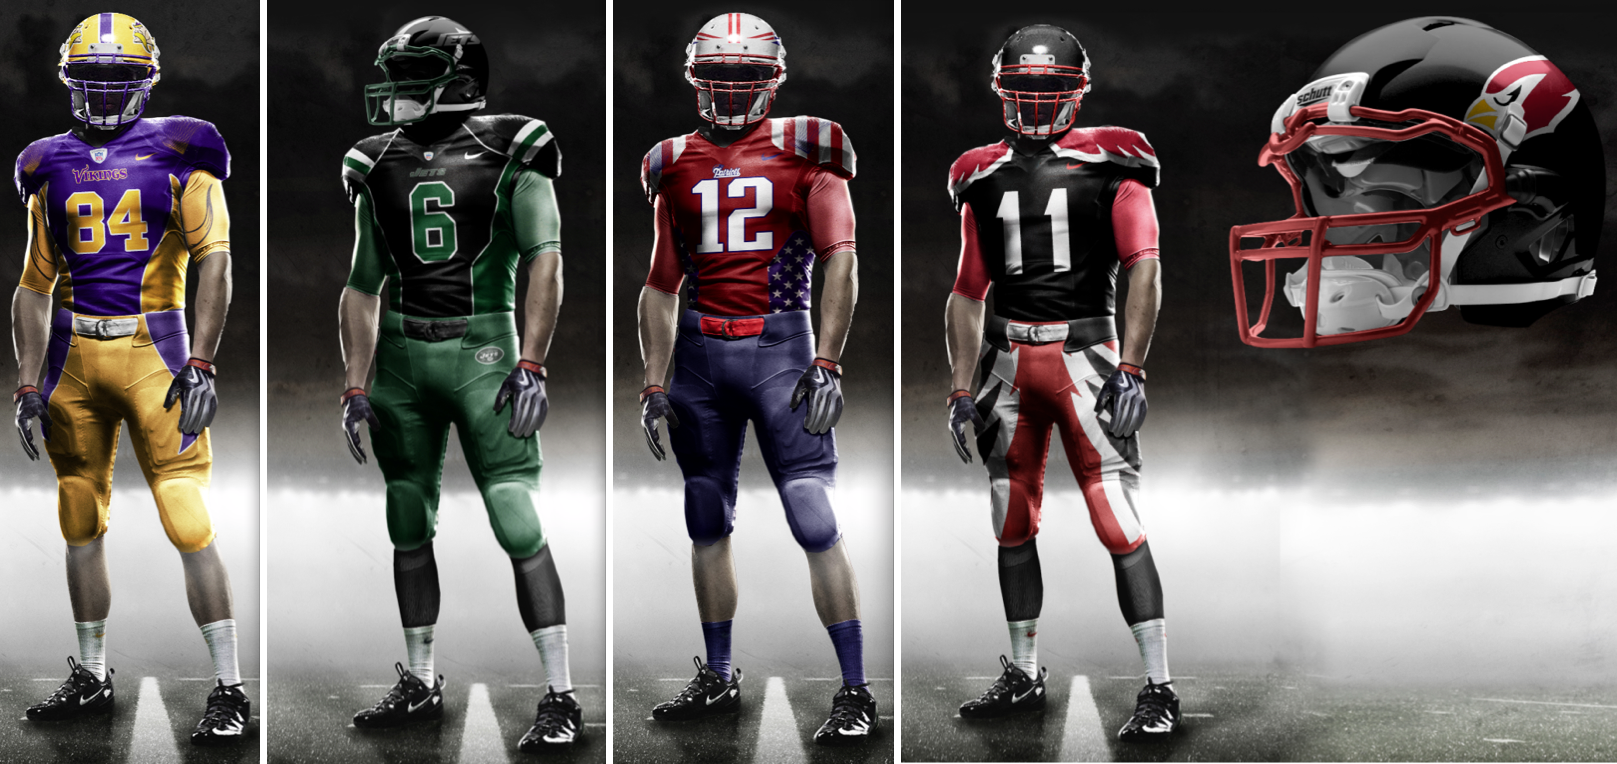 4d9c5536ece New NFL uniform prototype | New Nike NFL Jerseys | New nfl uniforms ...